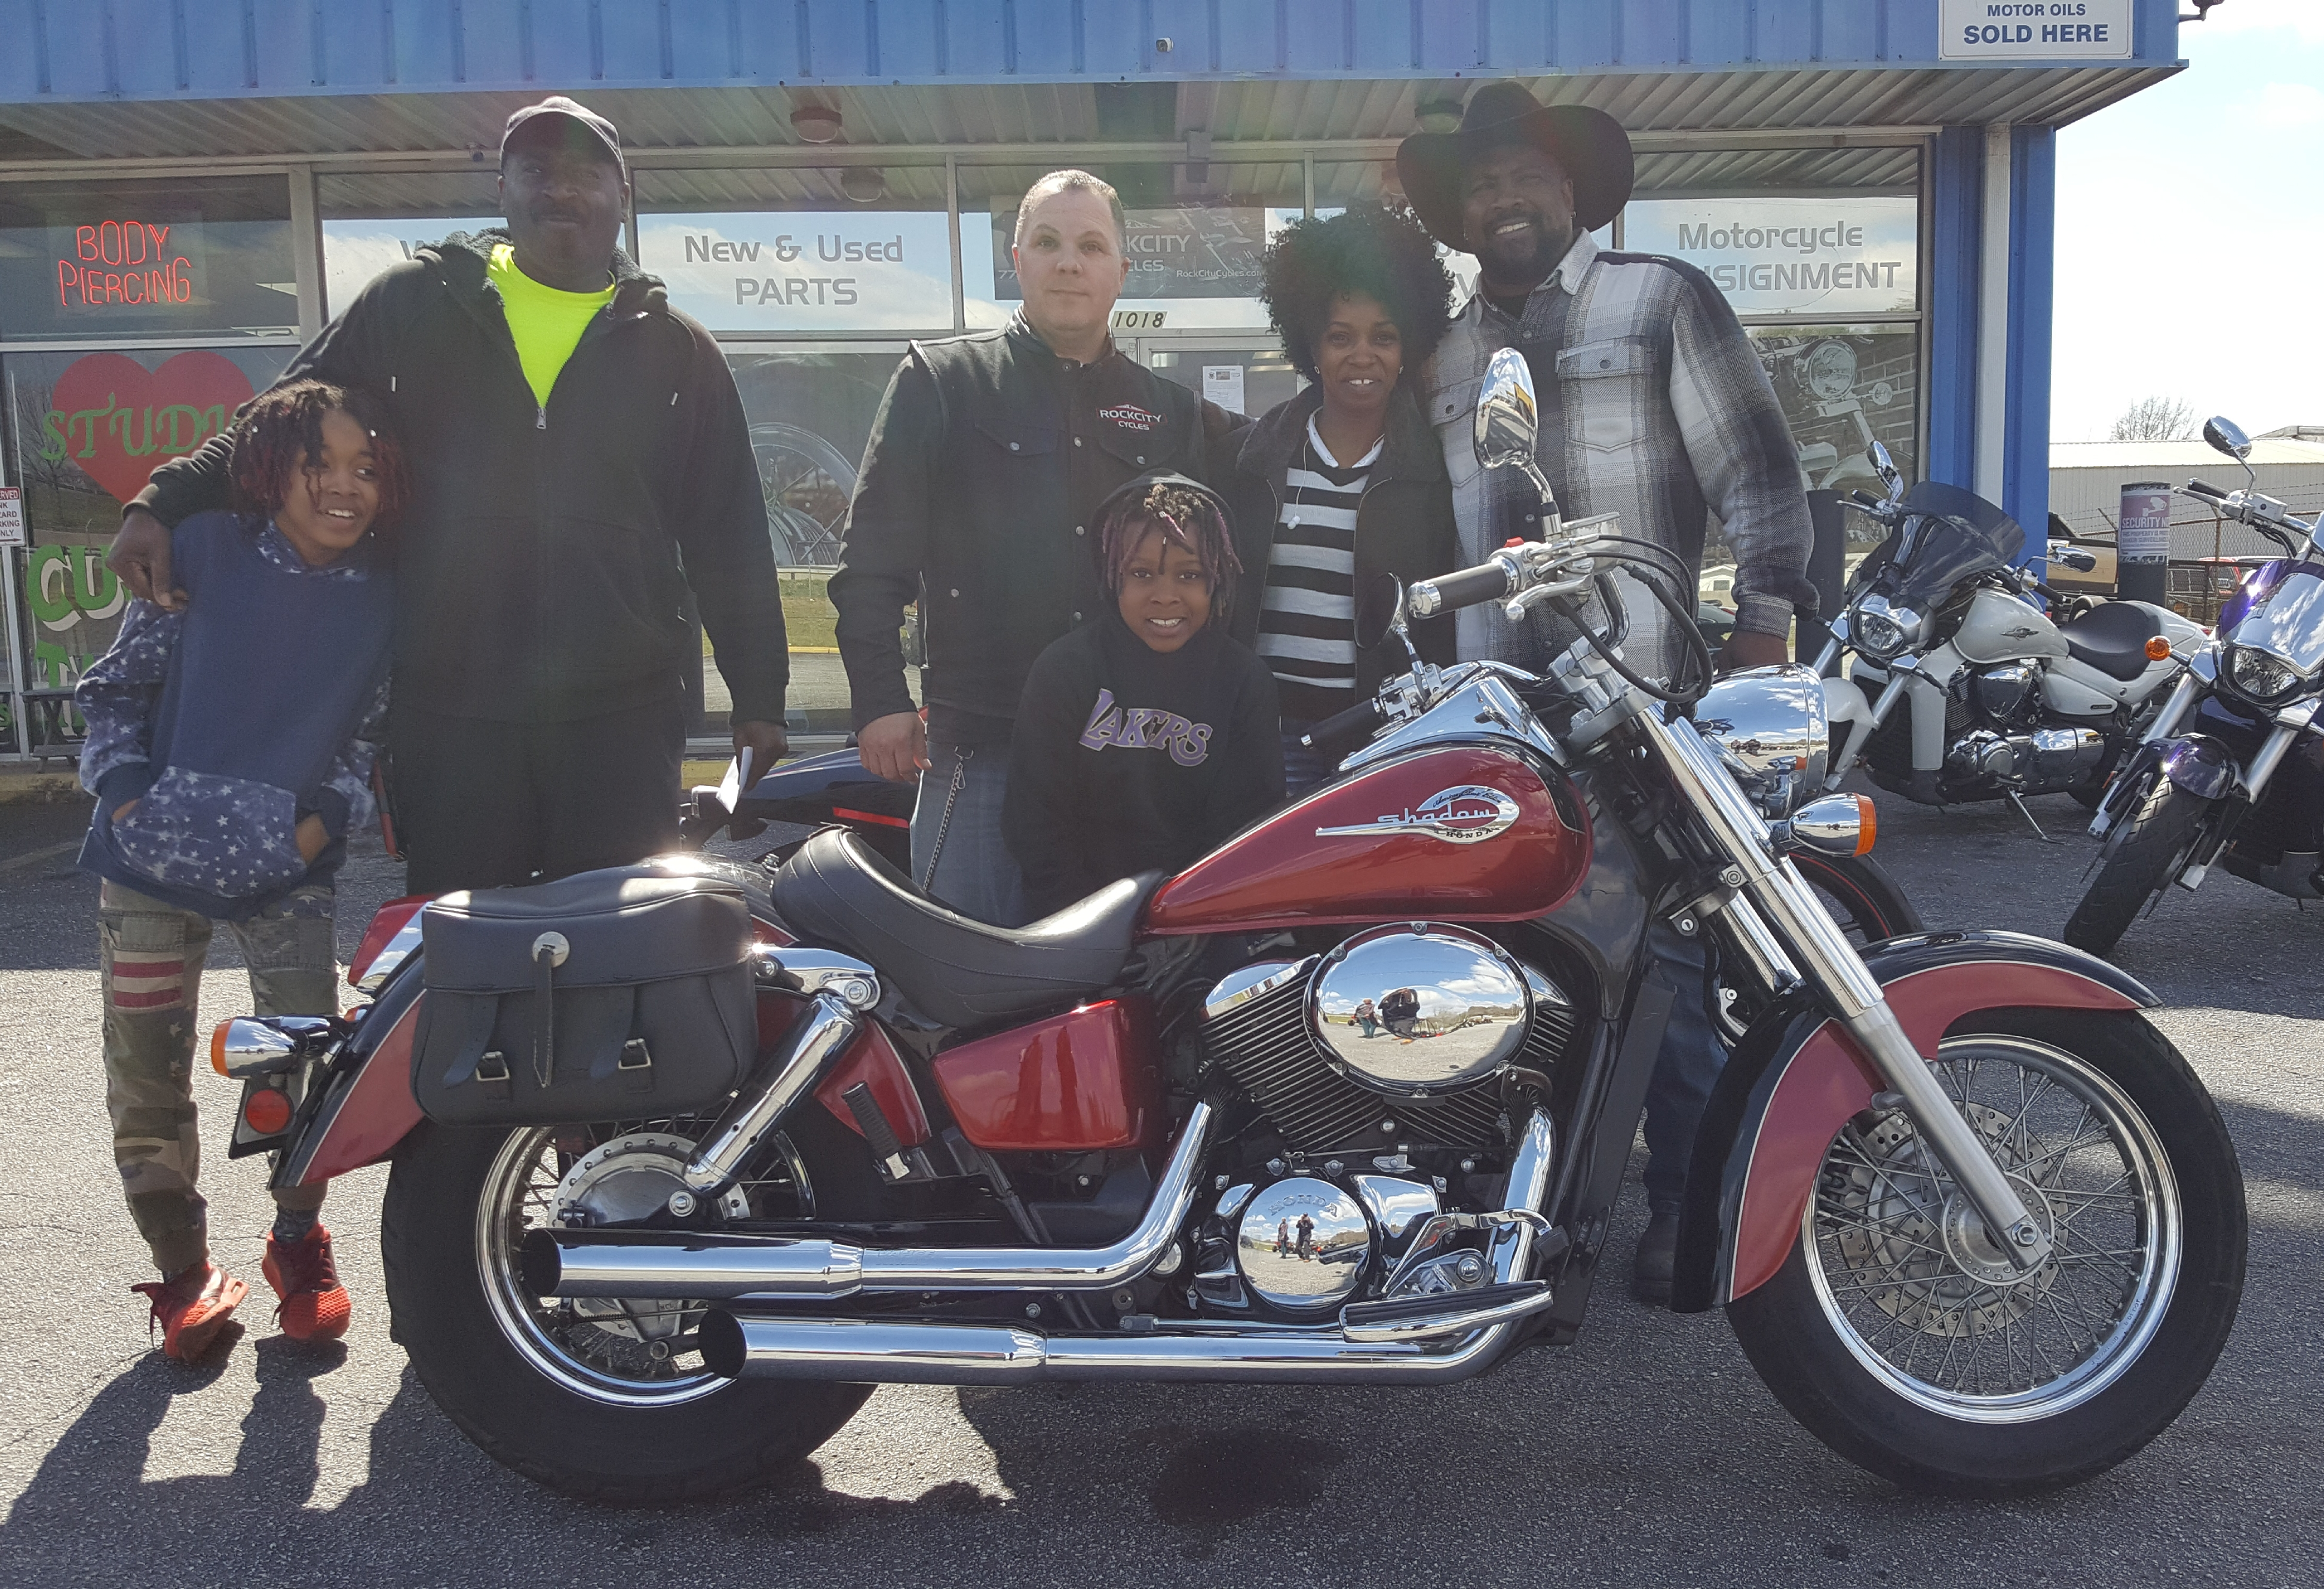 Paquetta W. with her 2003 Honda Shadow VT750